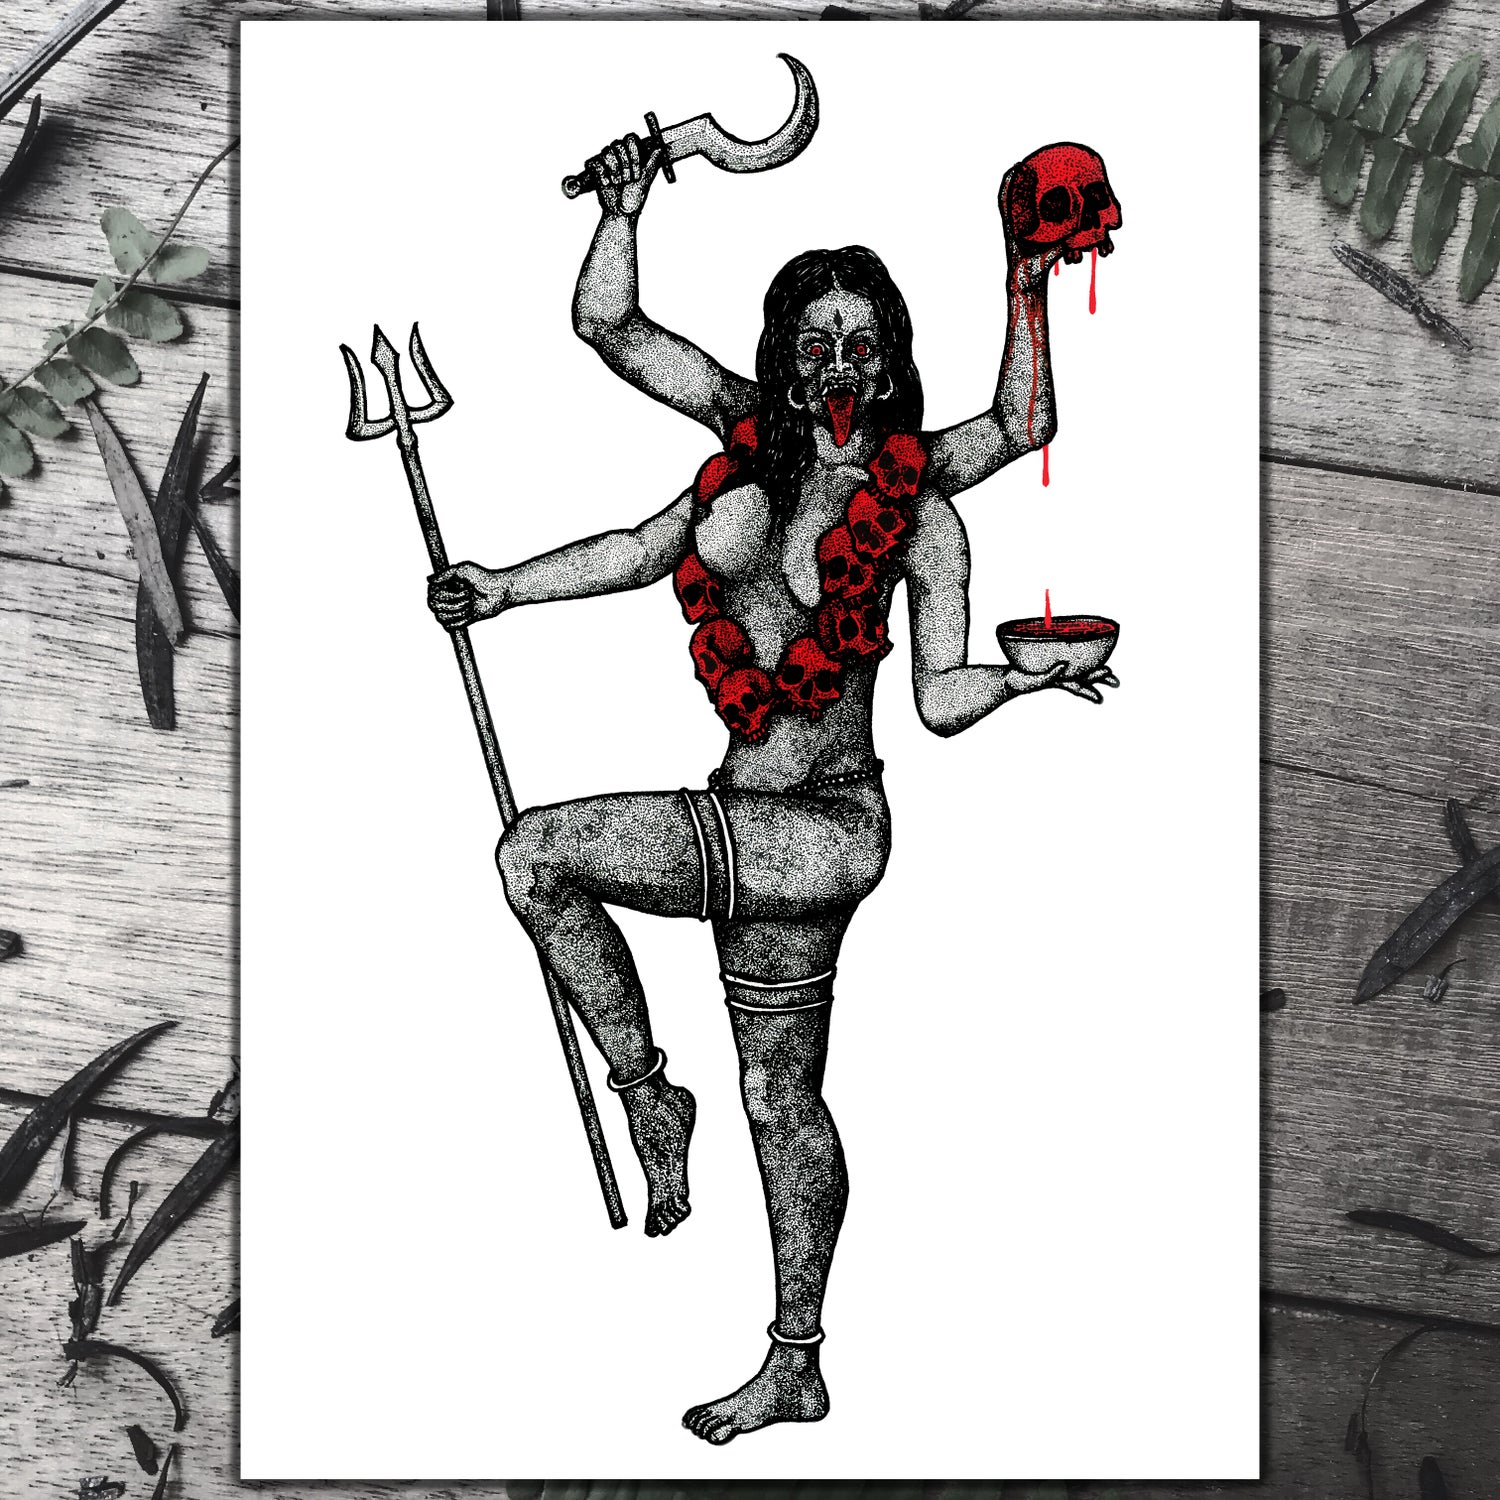 Kali, Goddess of Death, Time and Doomsday